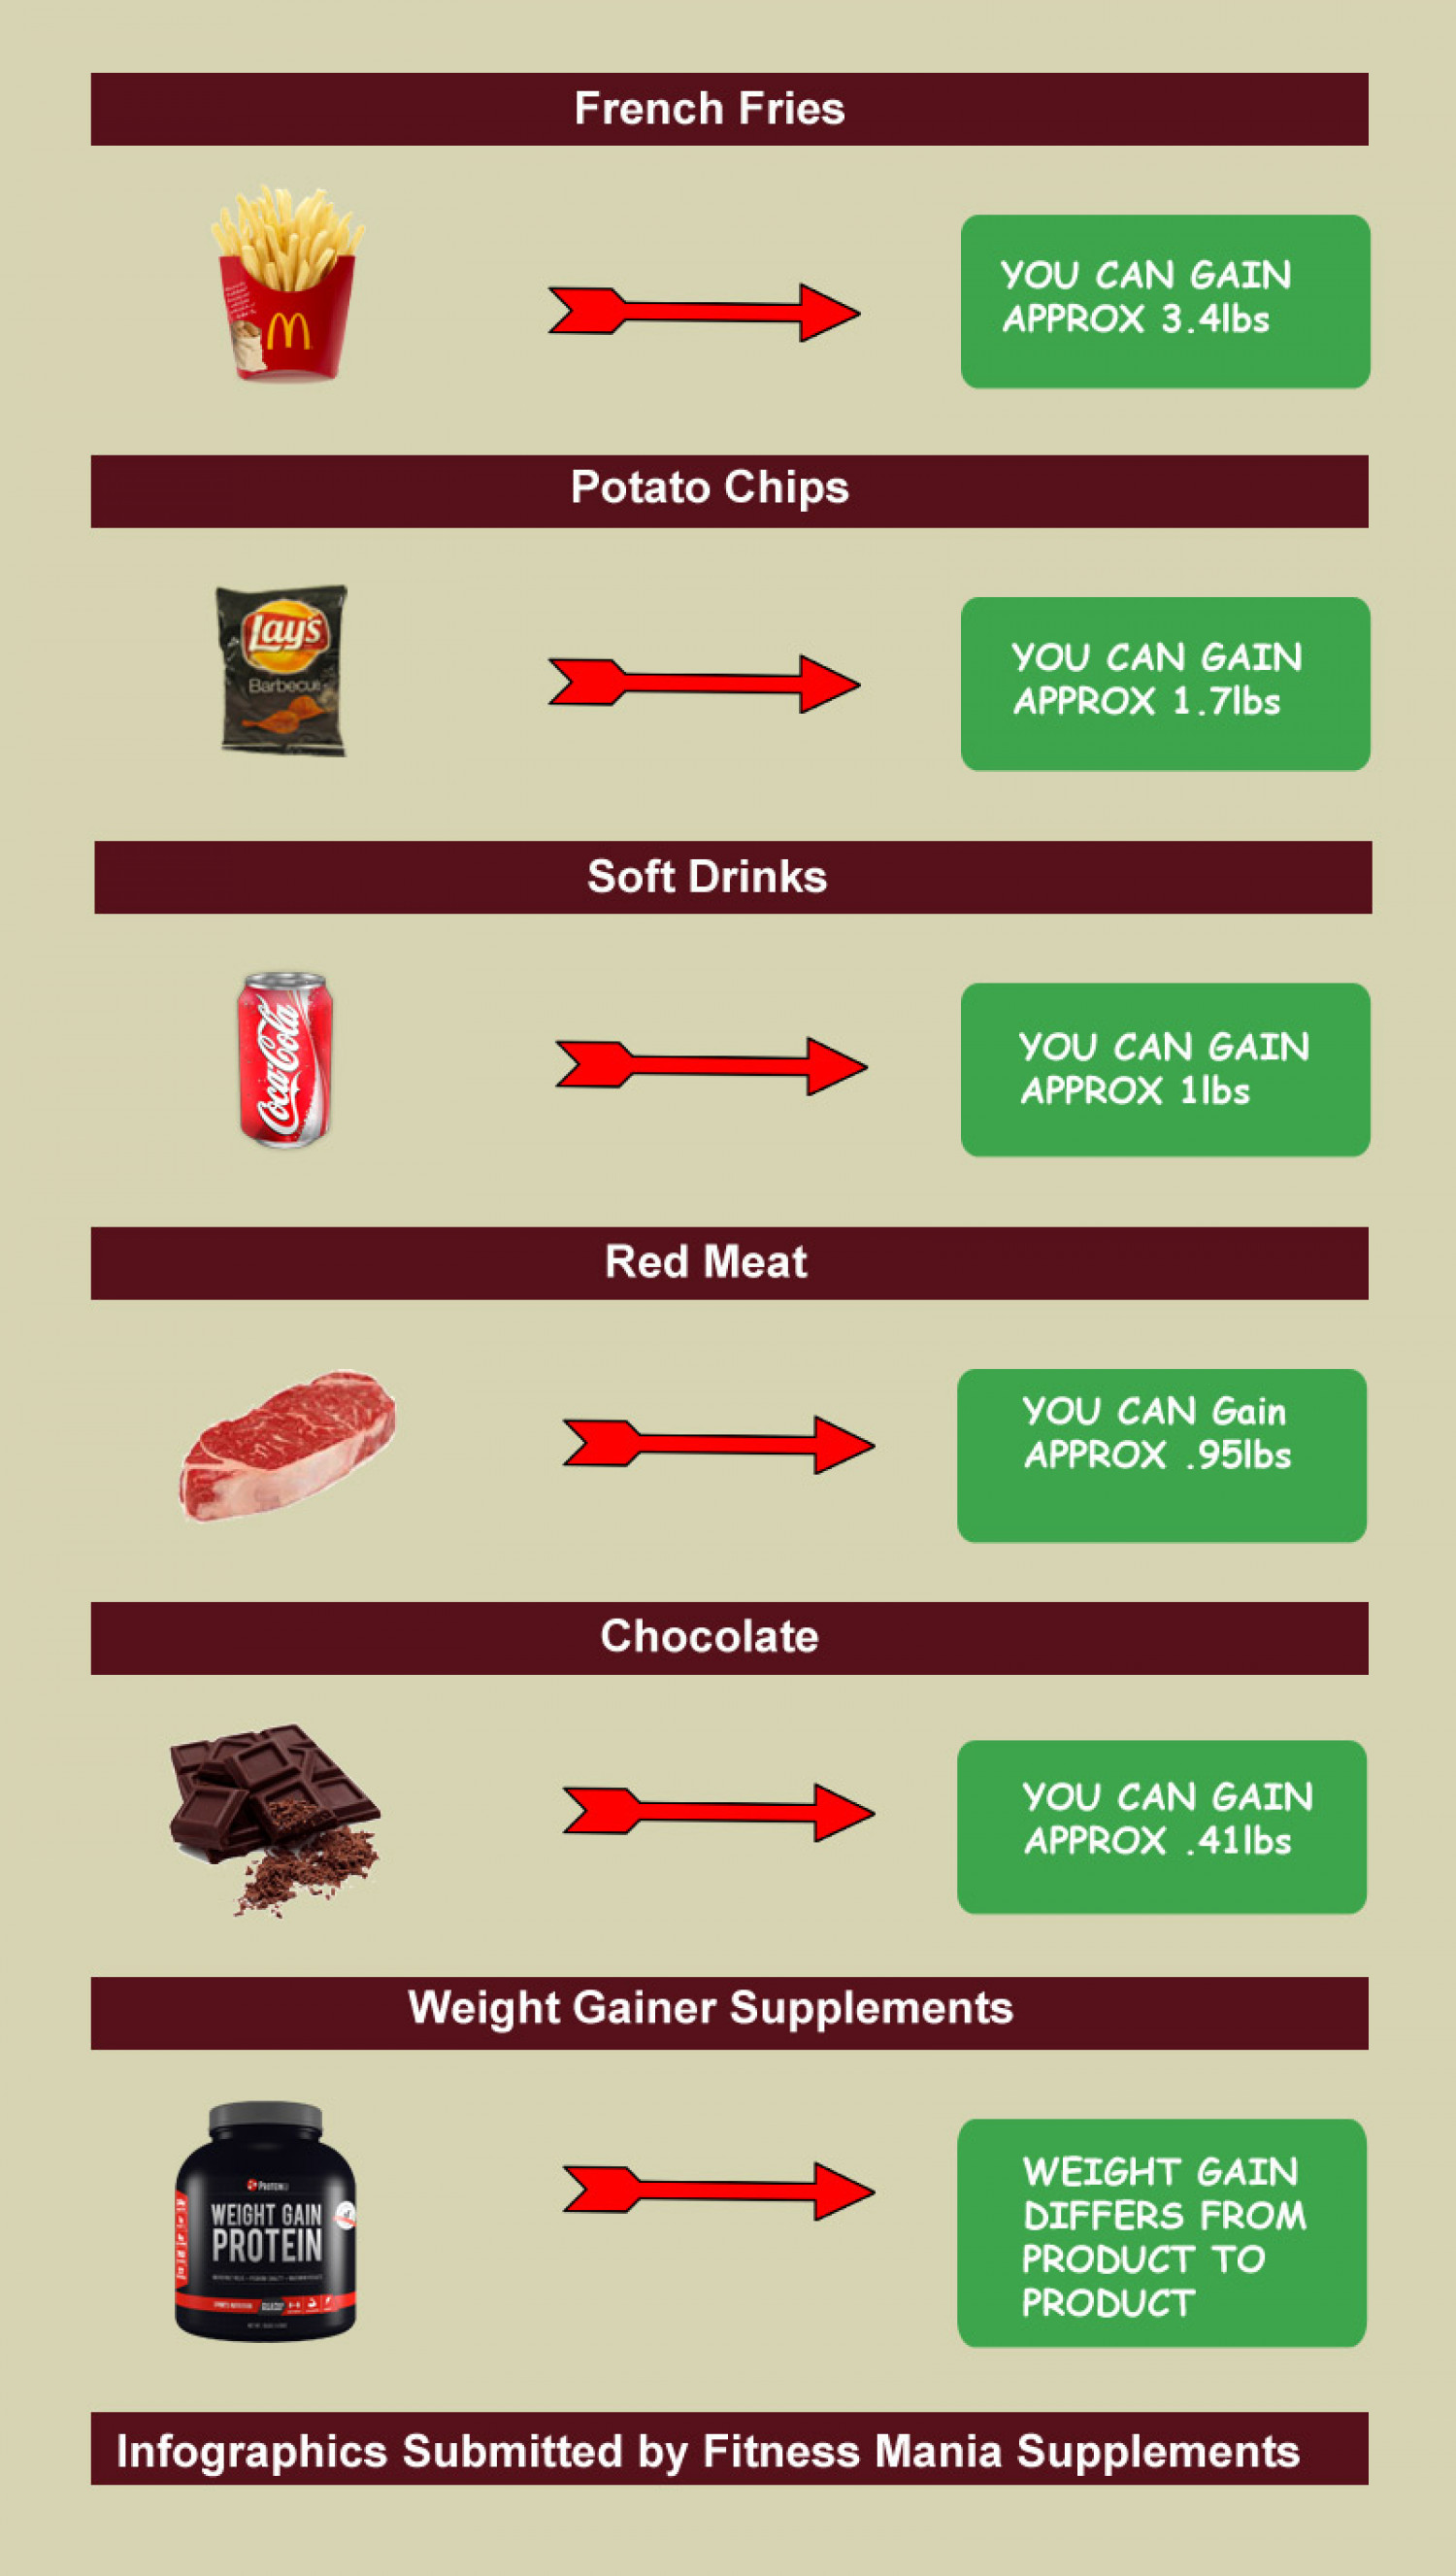 How to gain weight quickly? Infographic